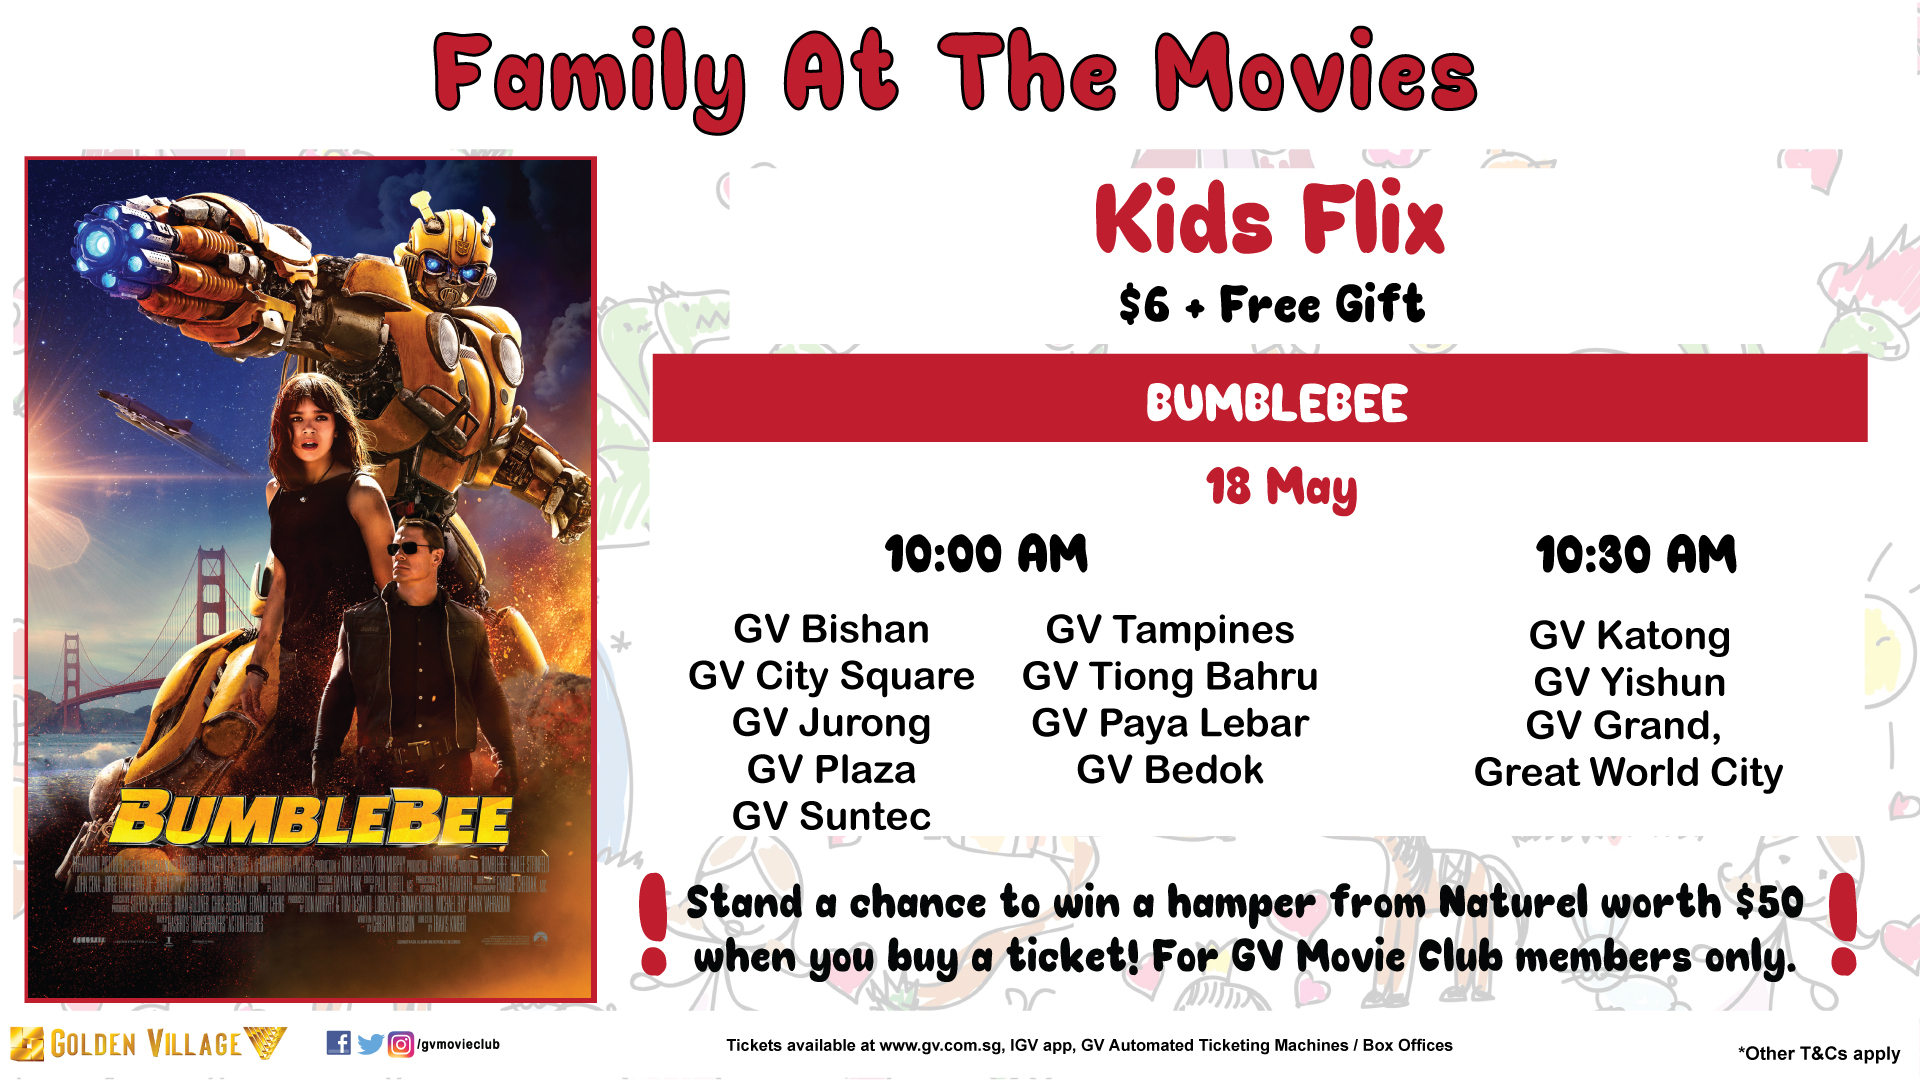 Golden Village's Family At The Movies